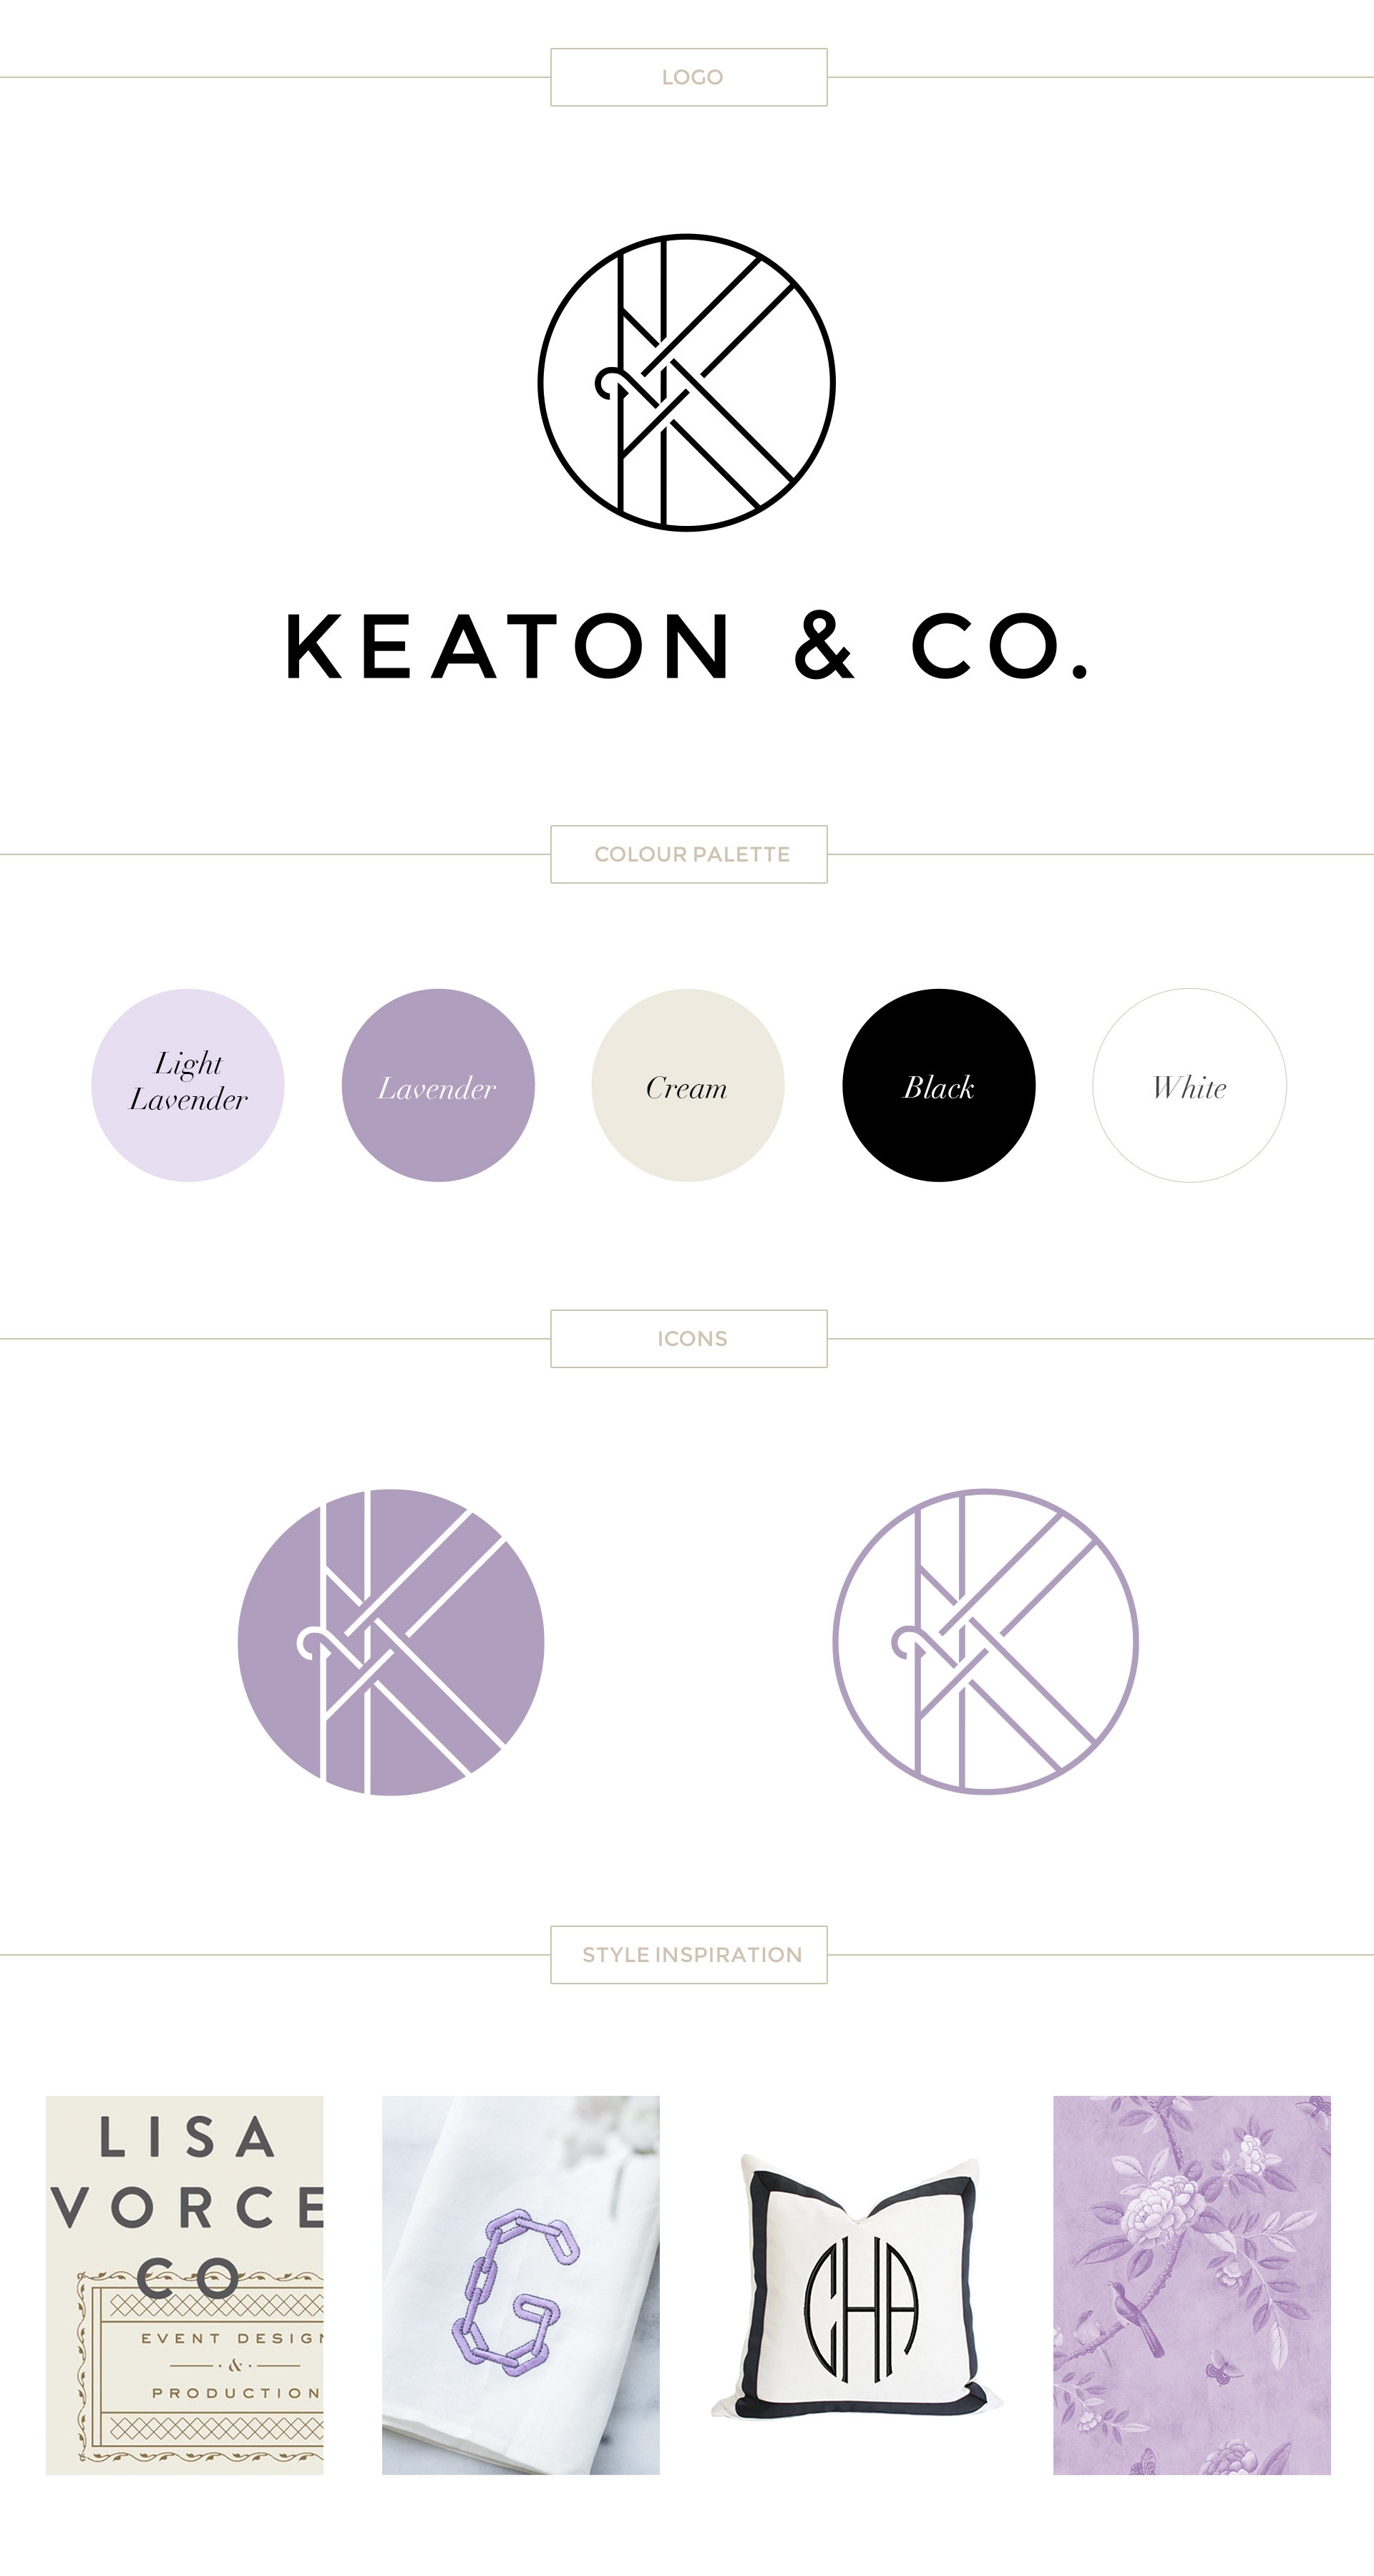 Paige Smith Portfolio Keaton & Co Brand Identity